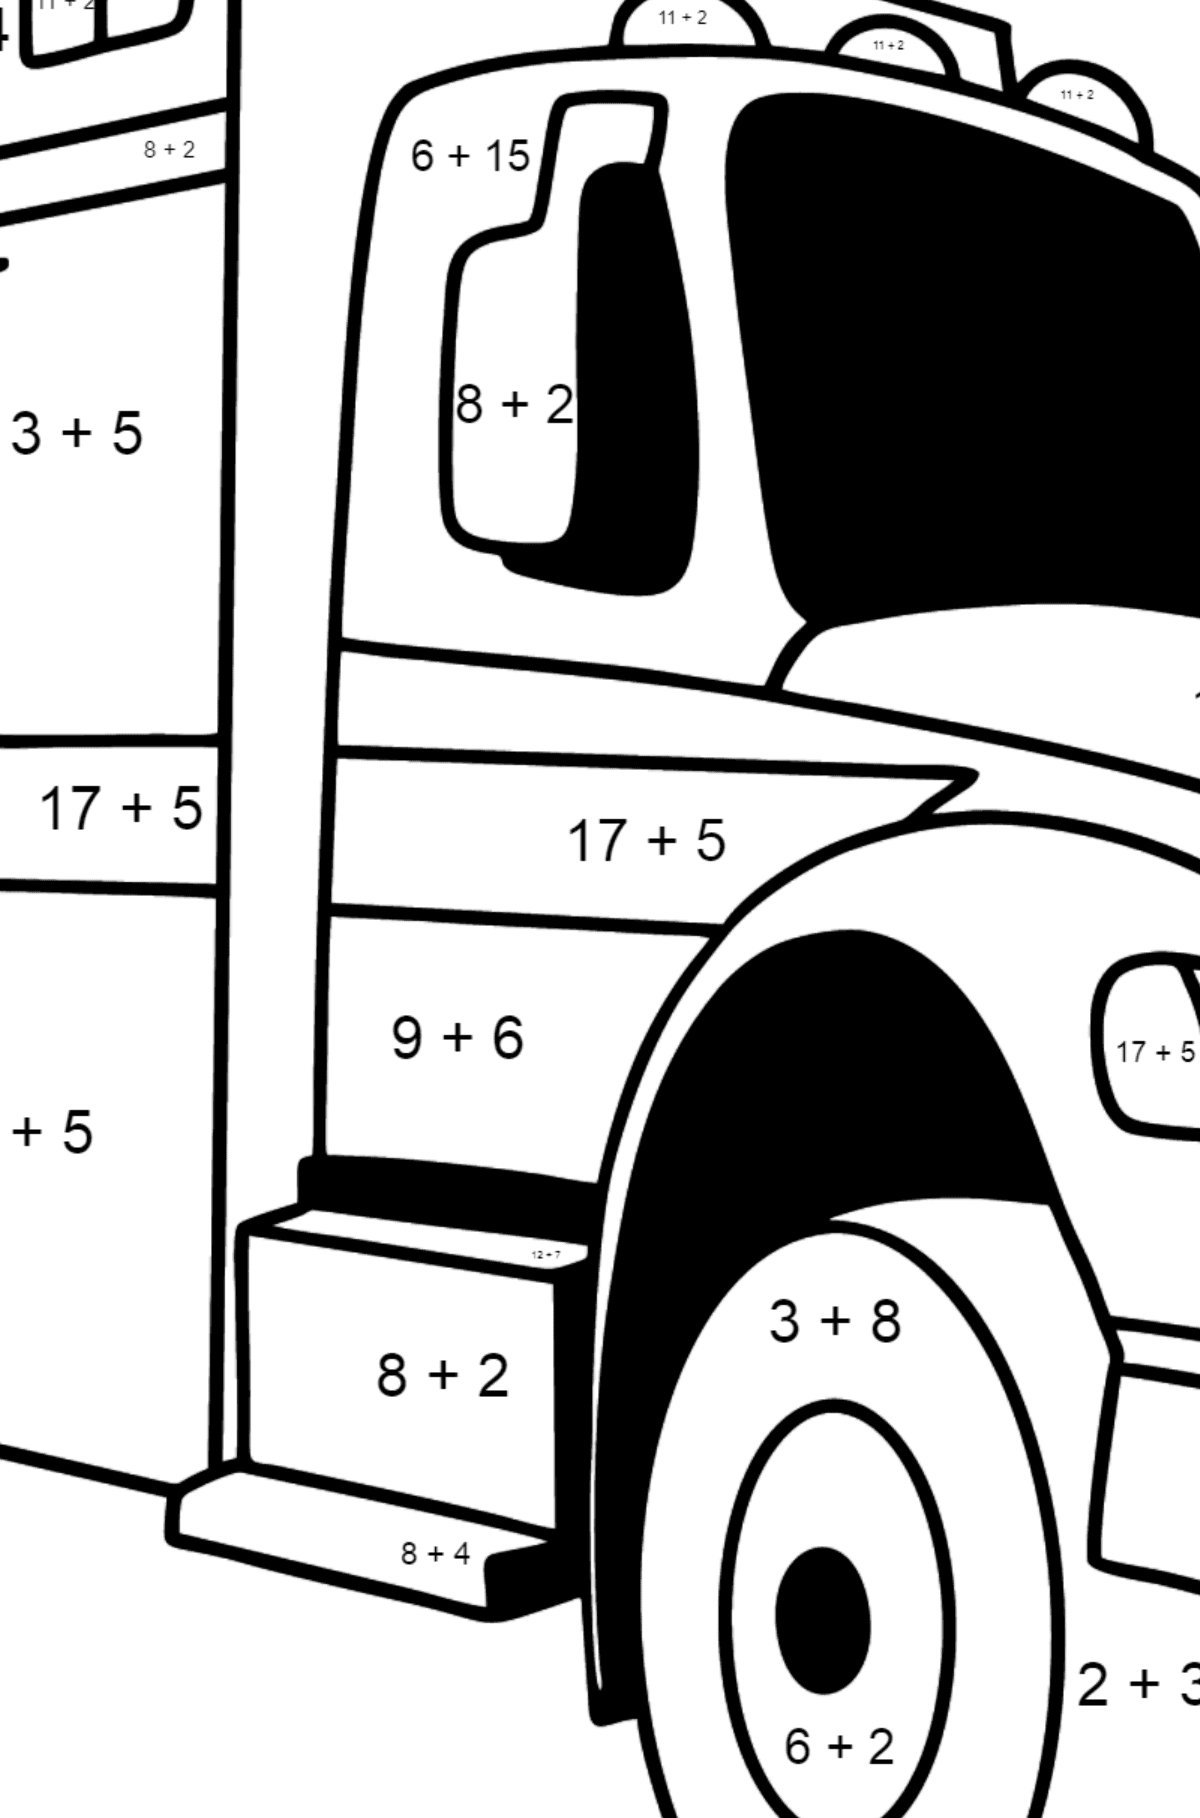 Fire Truck in Argentina coloring page - Math Coloring - Addition for Kids